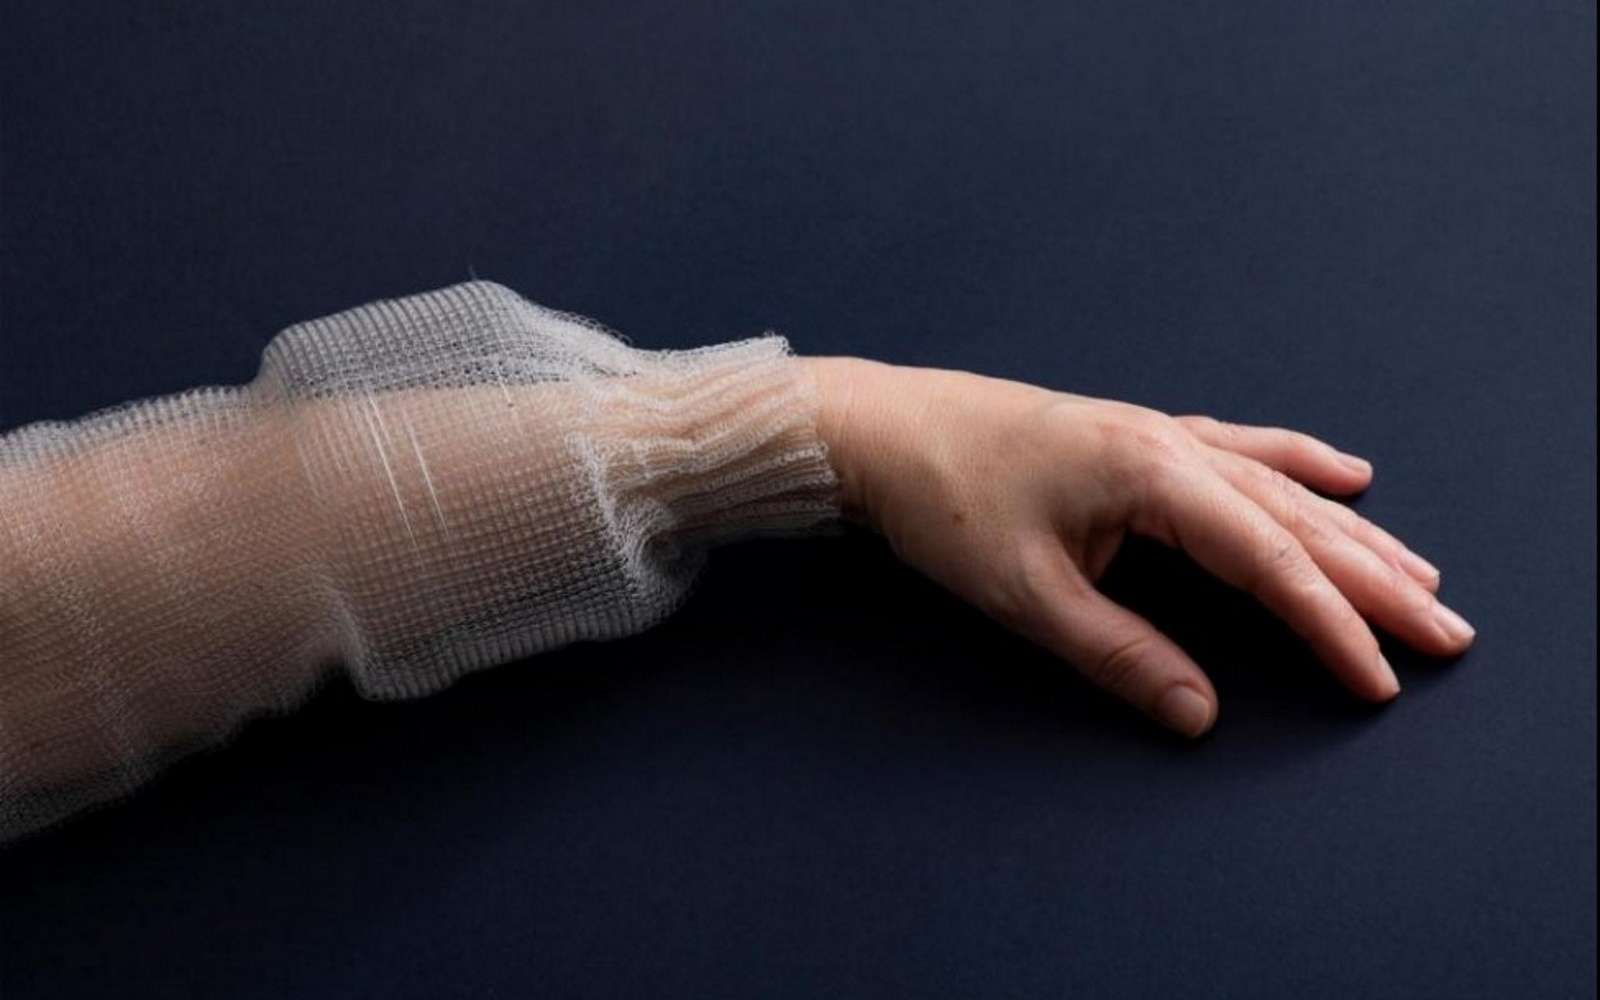 This textile fiber is able to record your physical activities